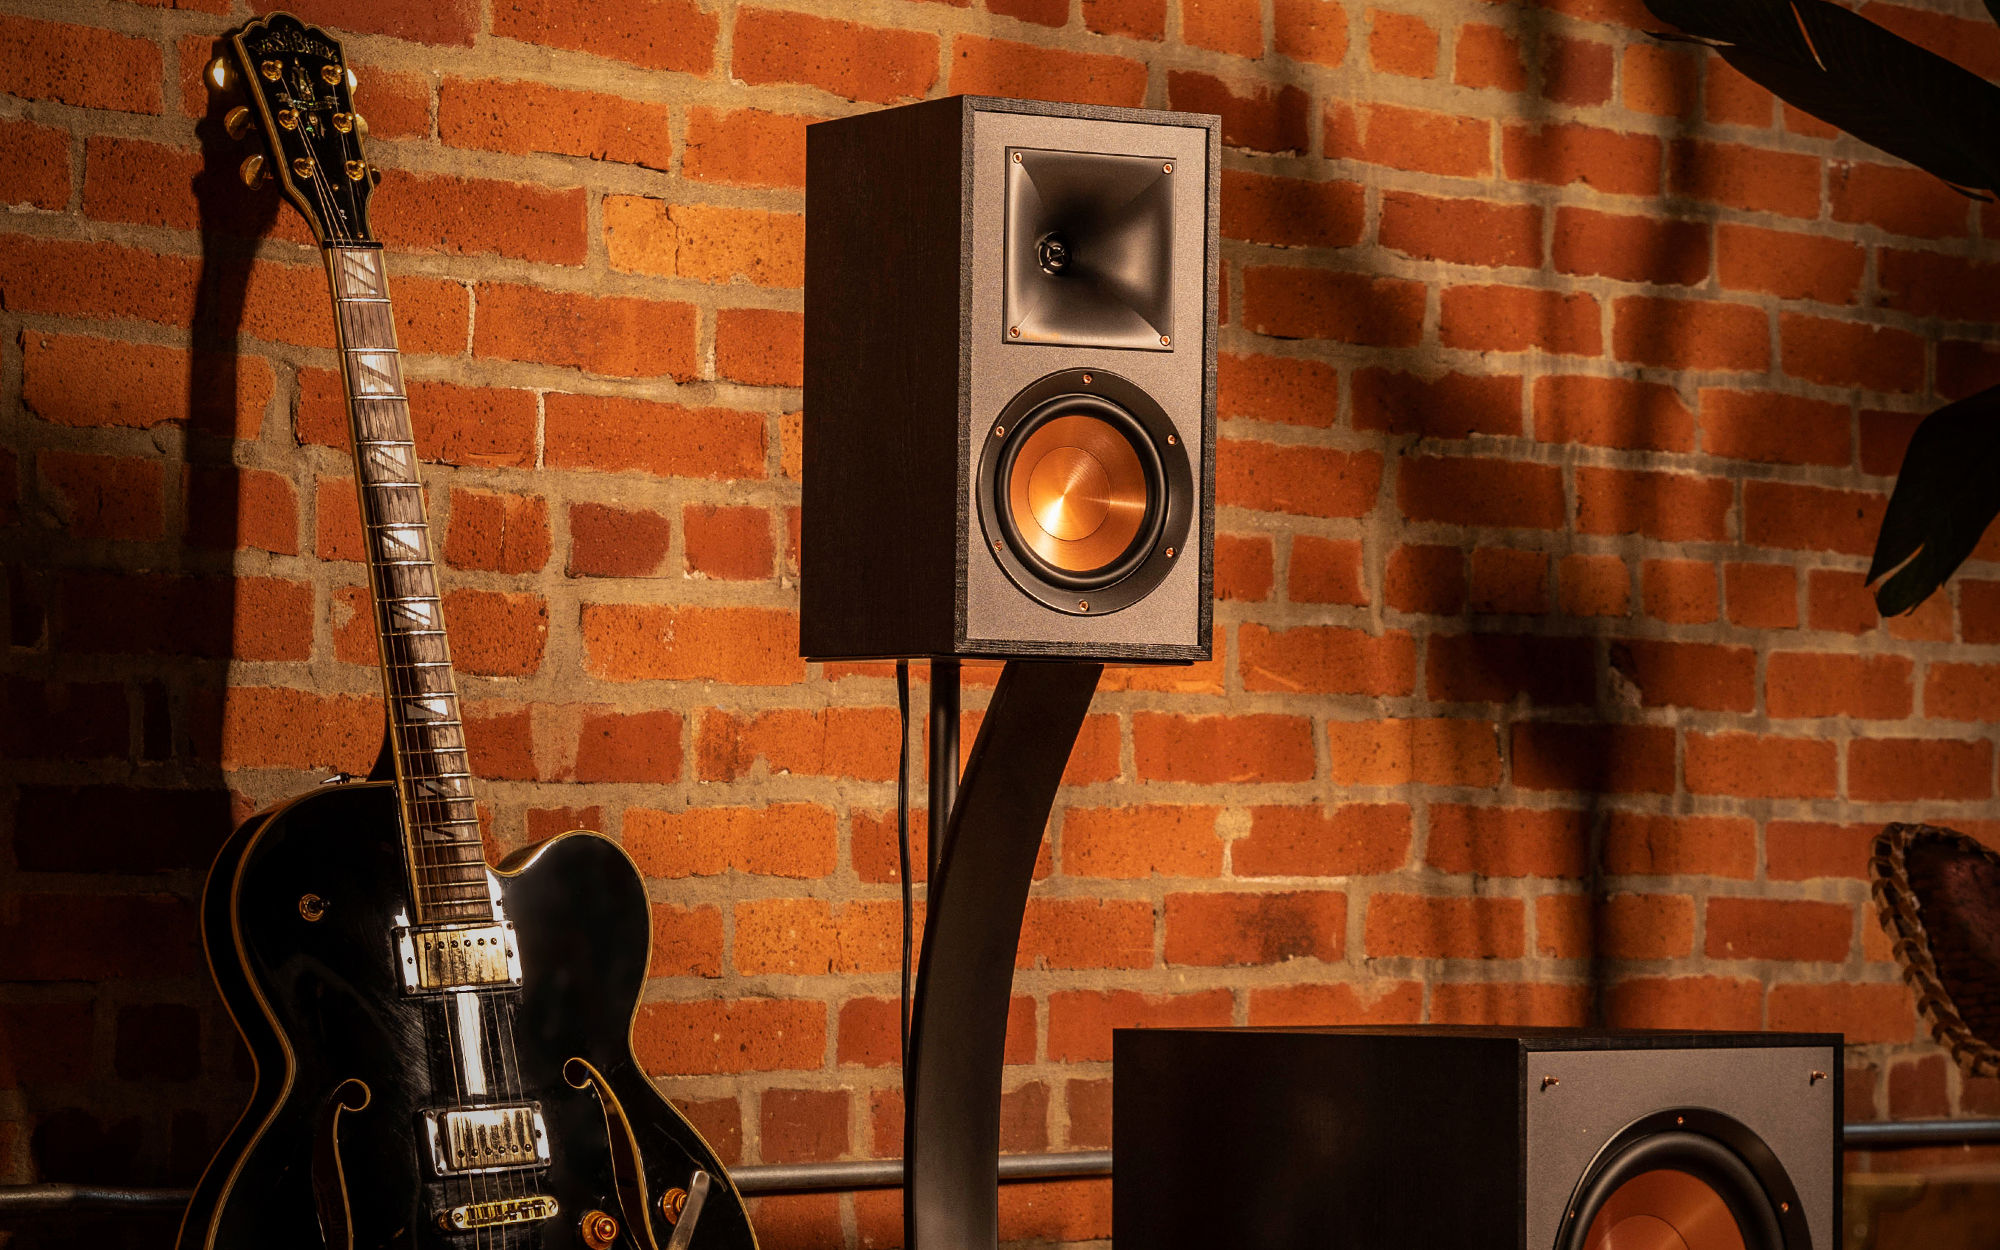 Bookshelf speaker with a guitar and Subwoofer